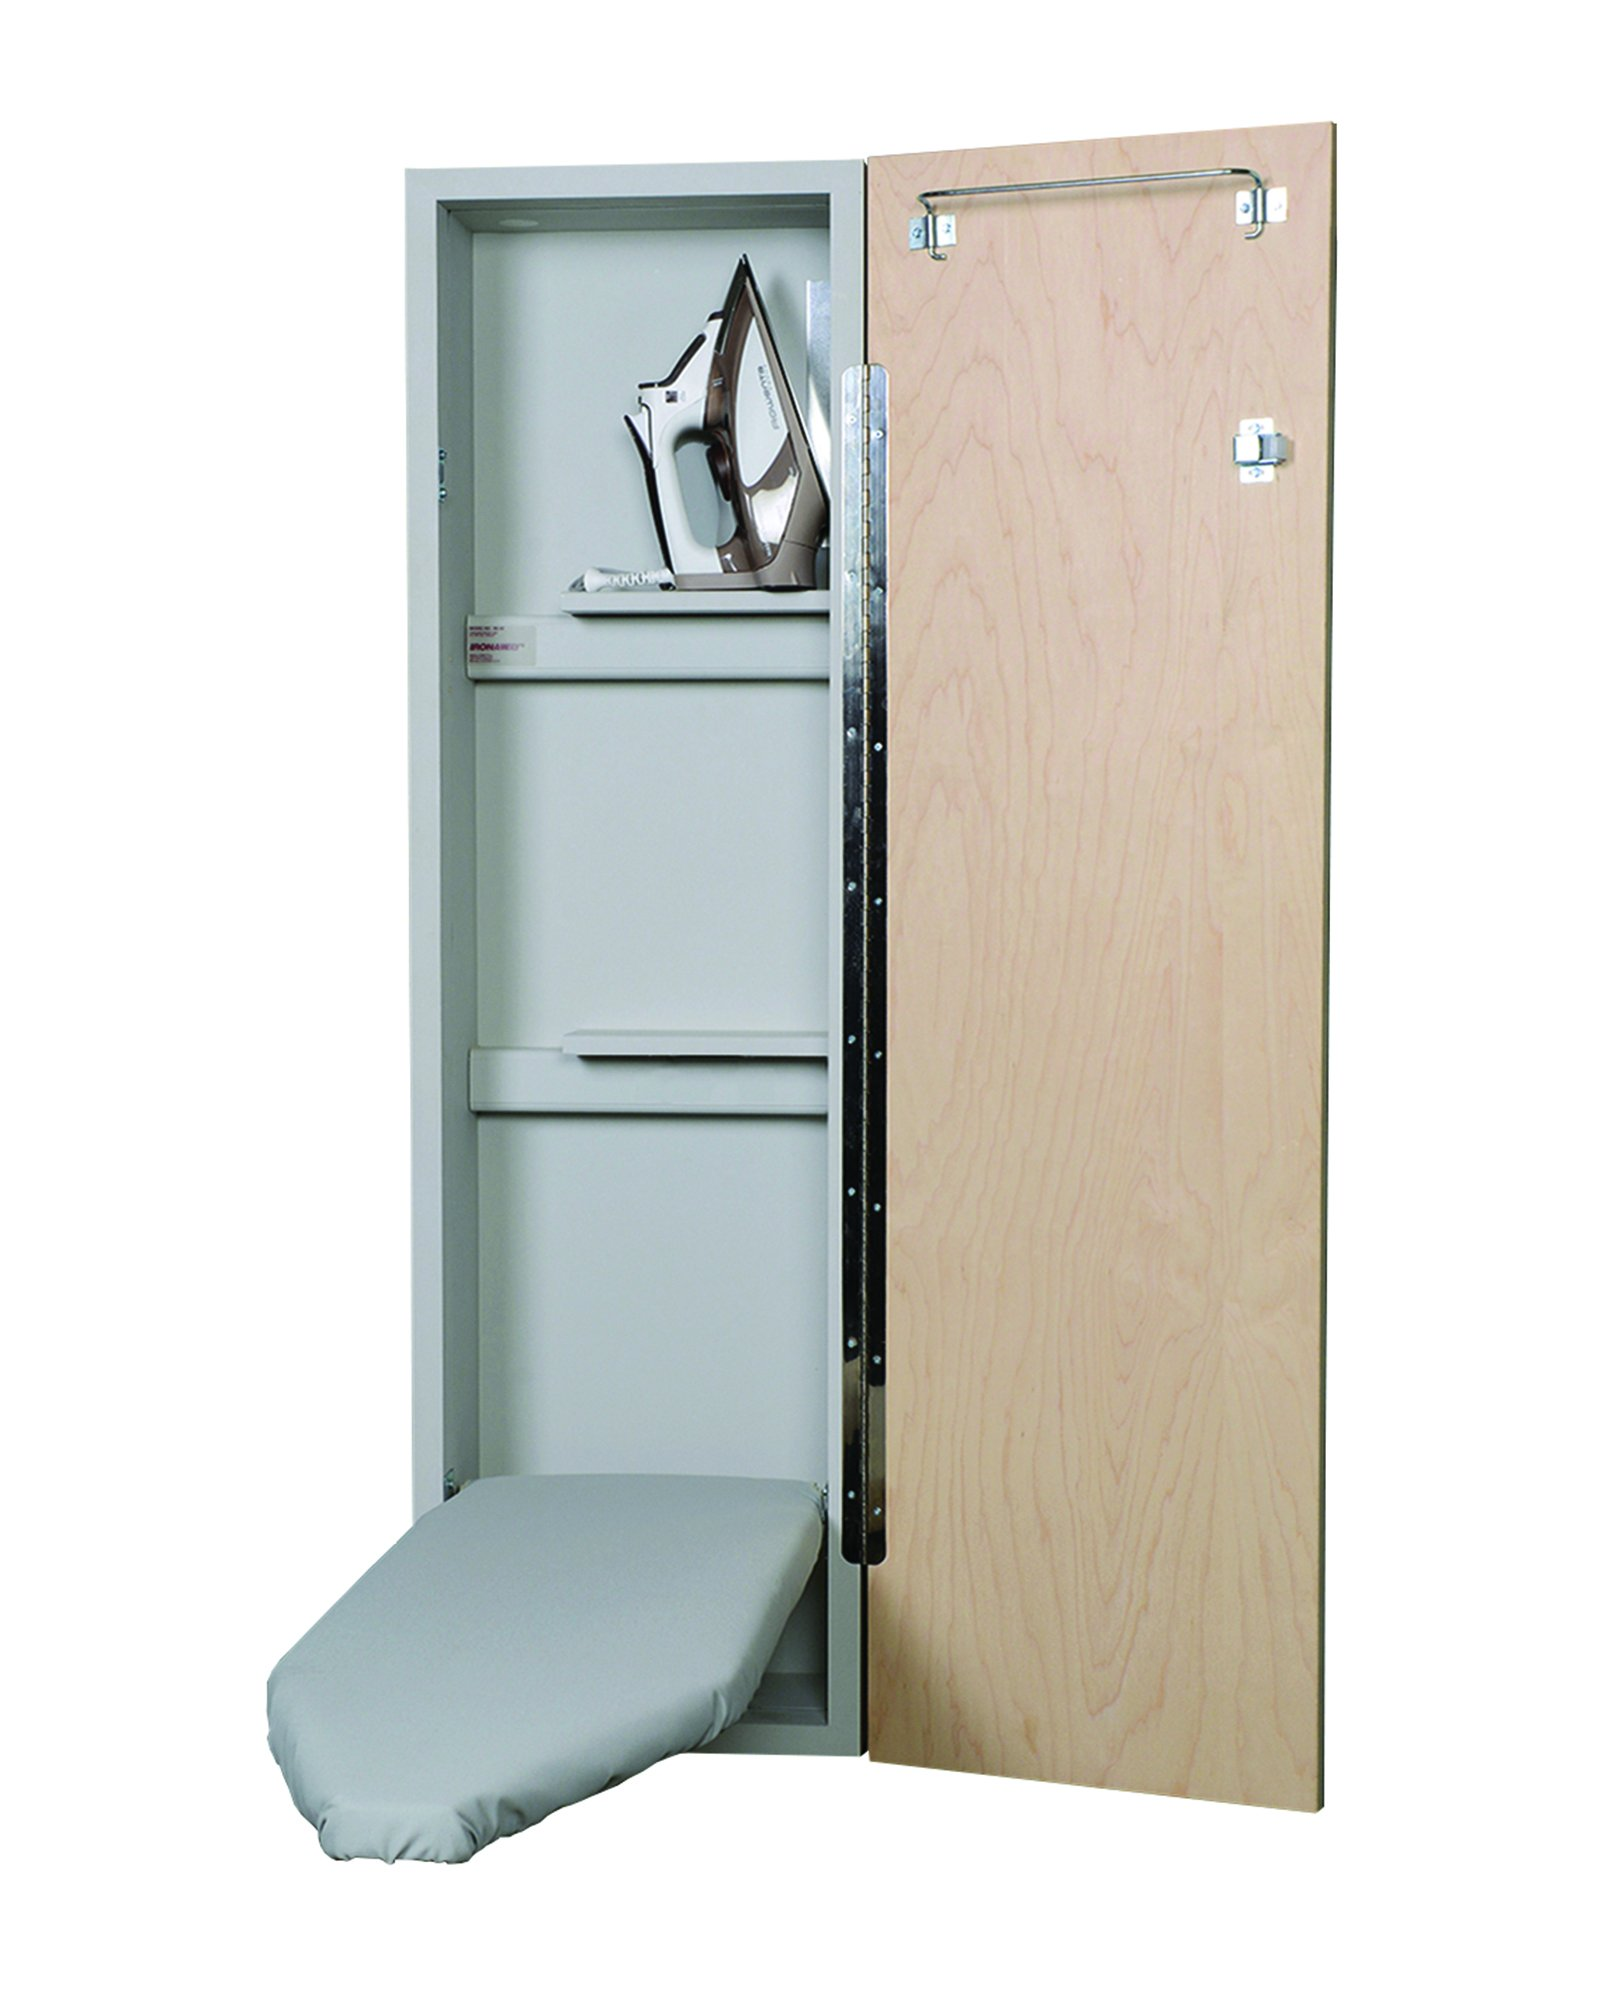 Iron-A-Way Deluxe Non-Electric Ironing Center, Raised Oak Panel Door